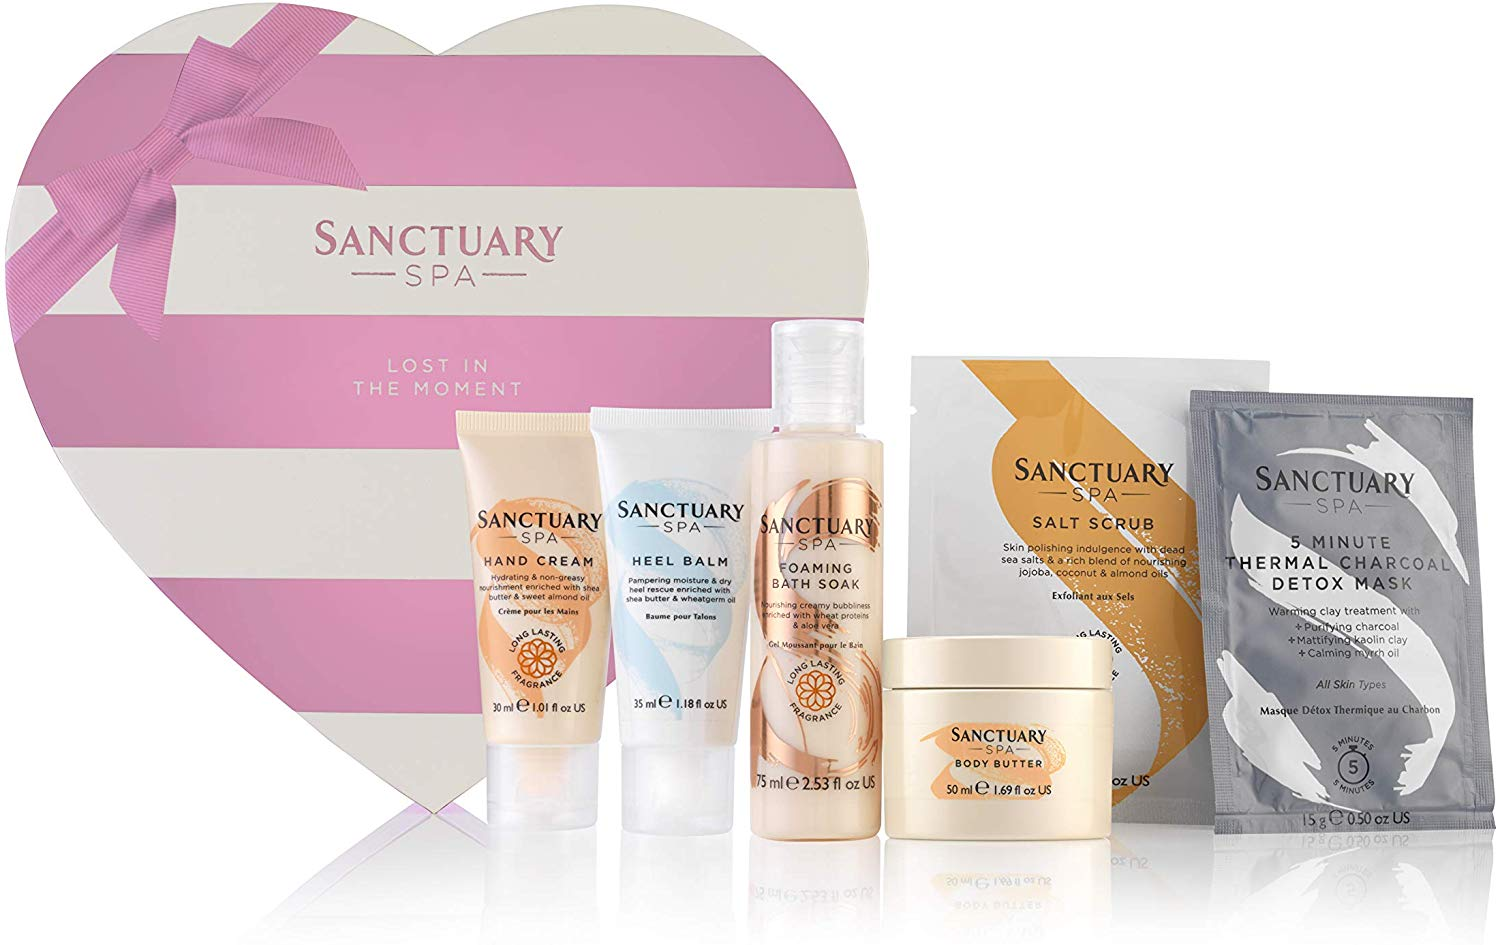 Sanctuary Spa Lost in the Moment Gift Box